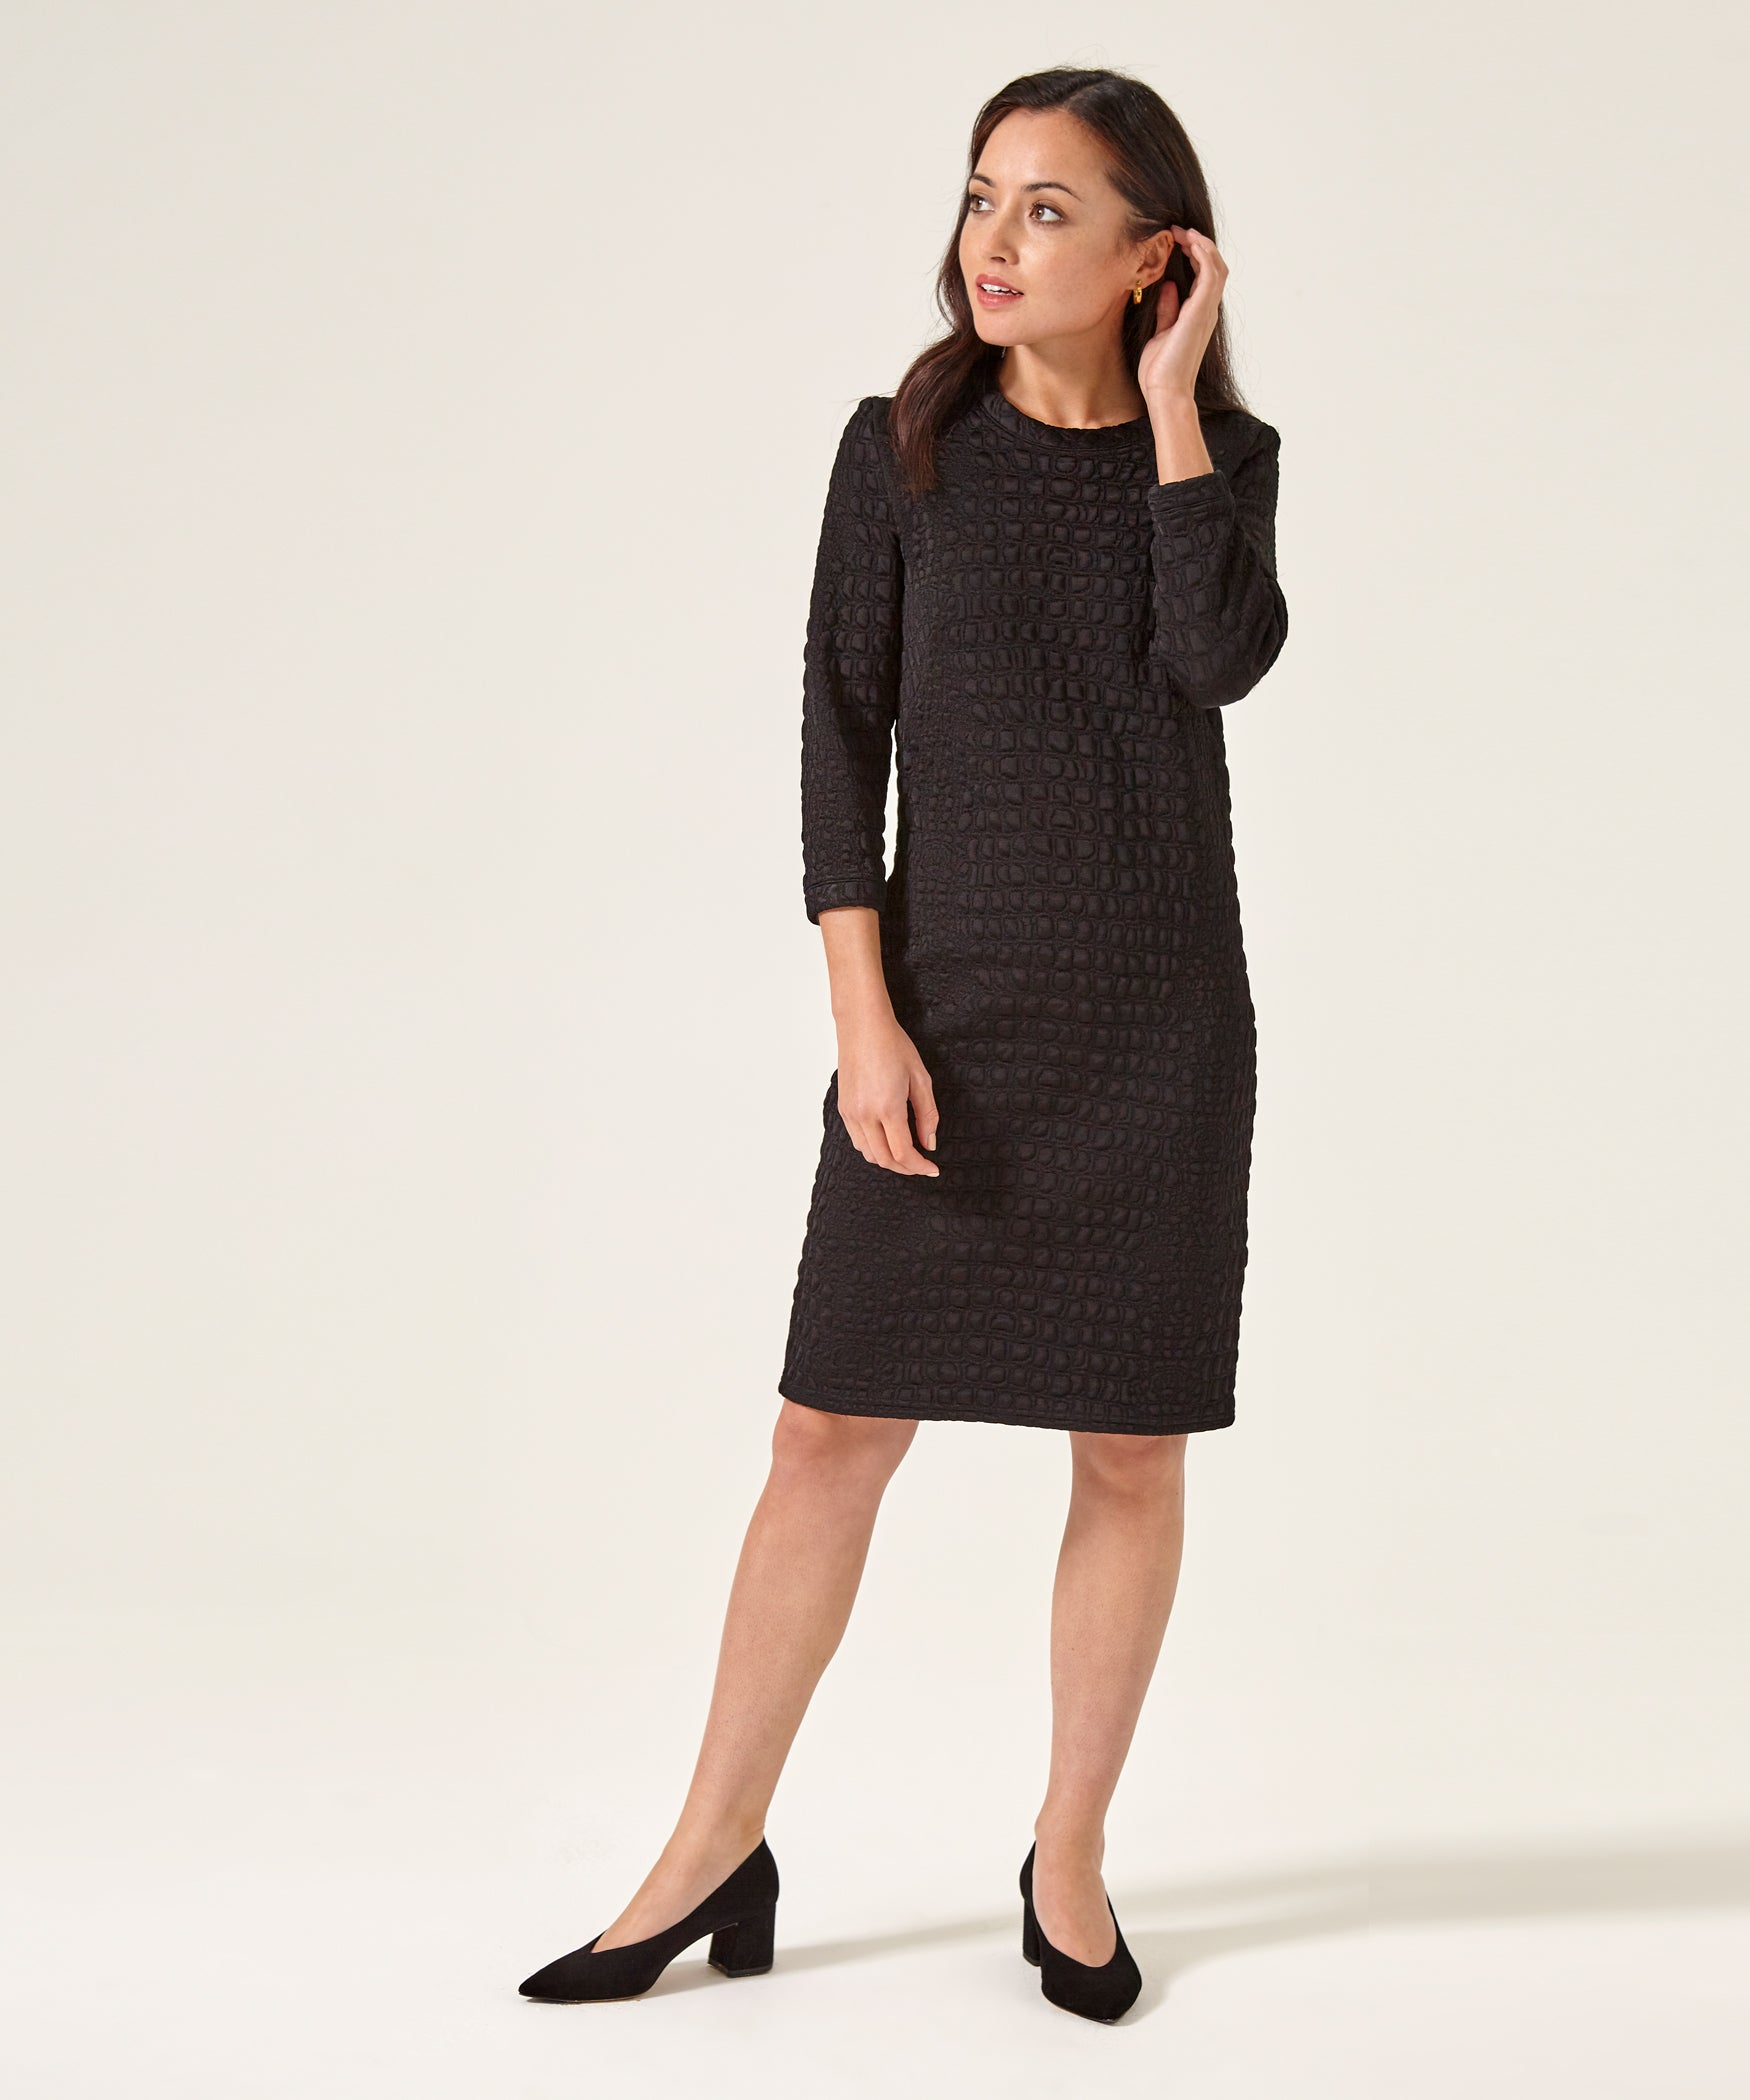 aba5118f5c6 Petite Black Sweater Dress (3 4 Length Sleeves) Made In The UK